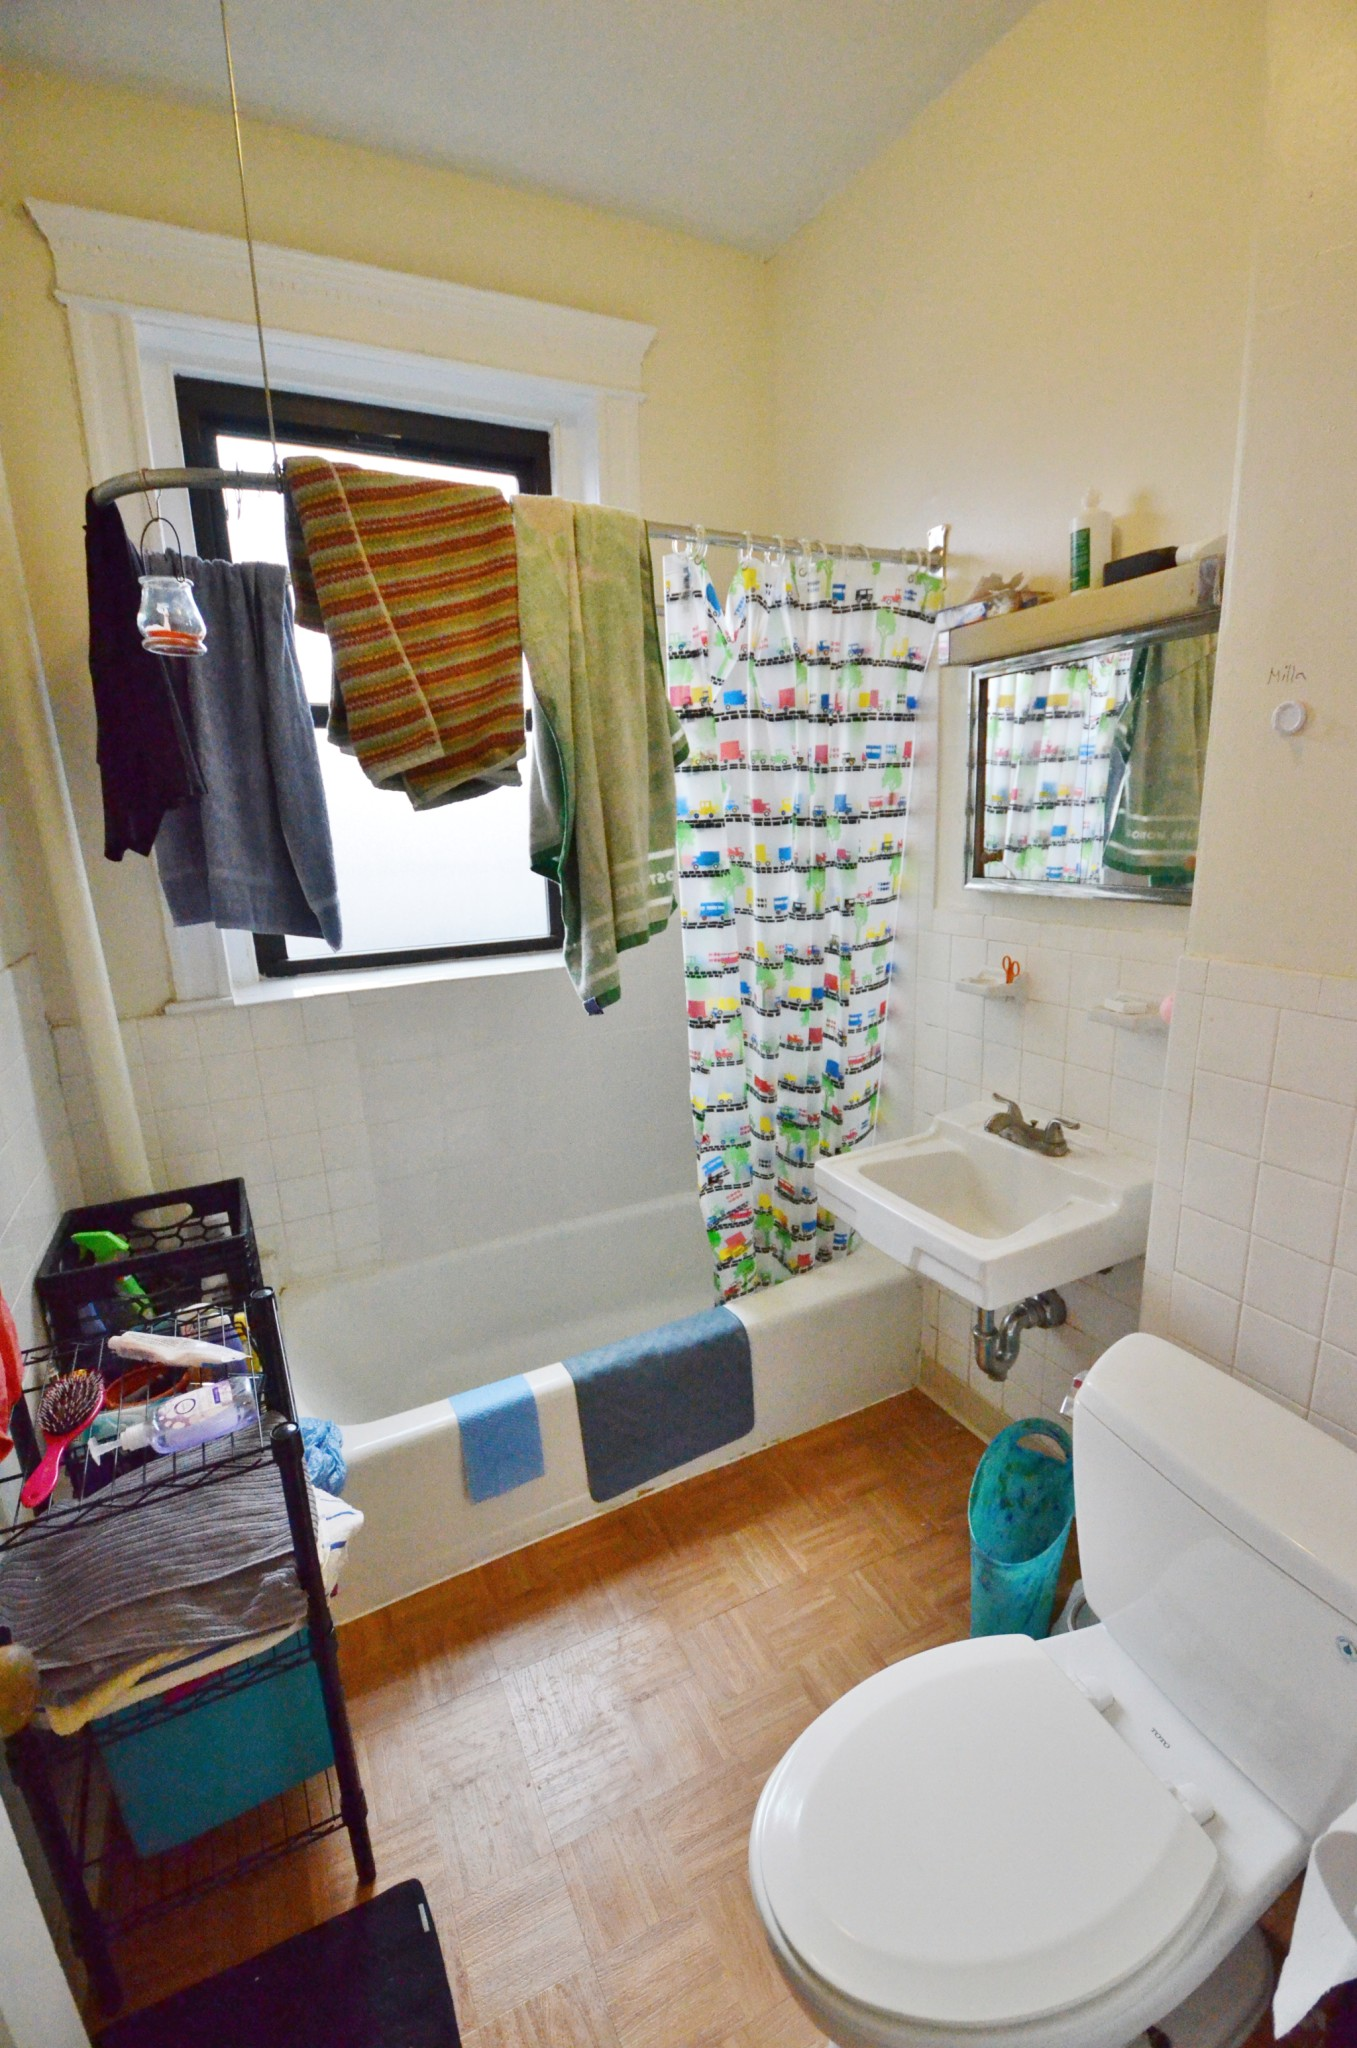 Avail 9/1 - Convenient, Updated, Well lit 1 BR on Westland